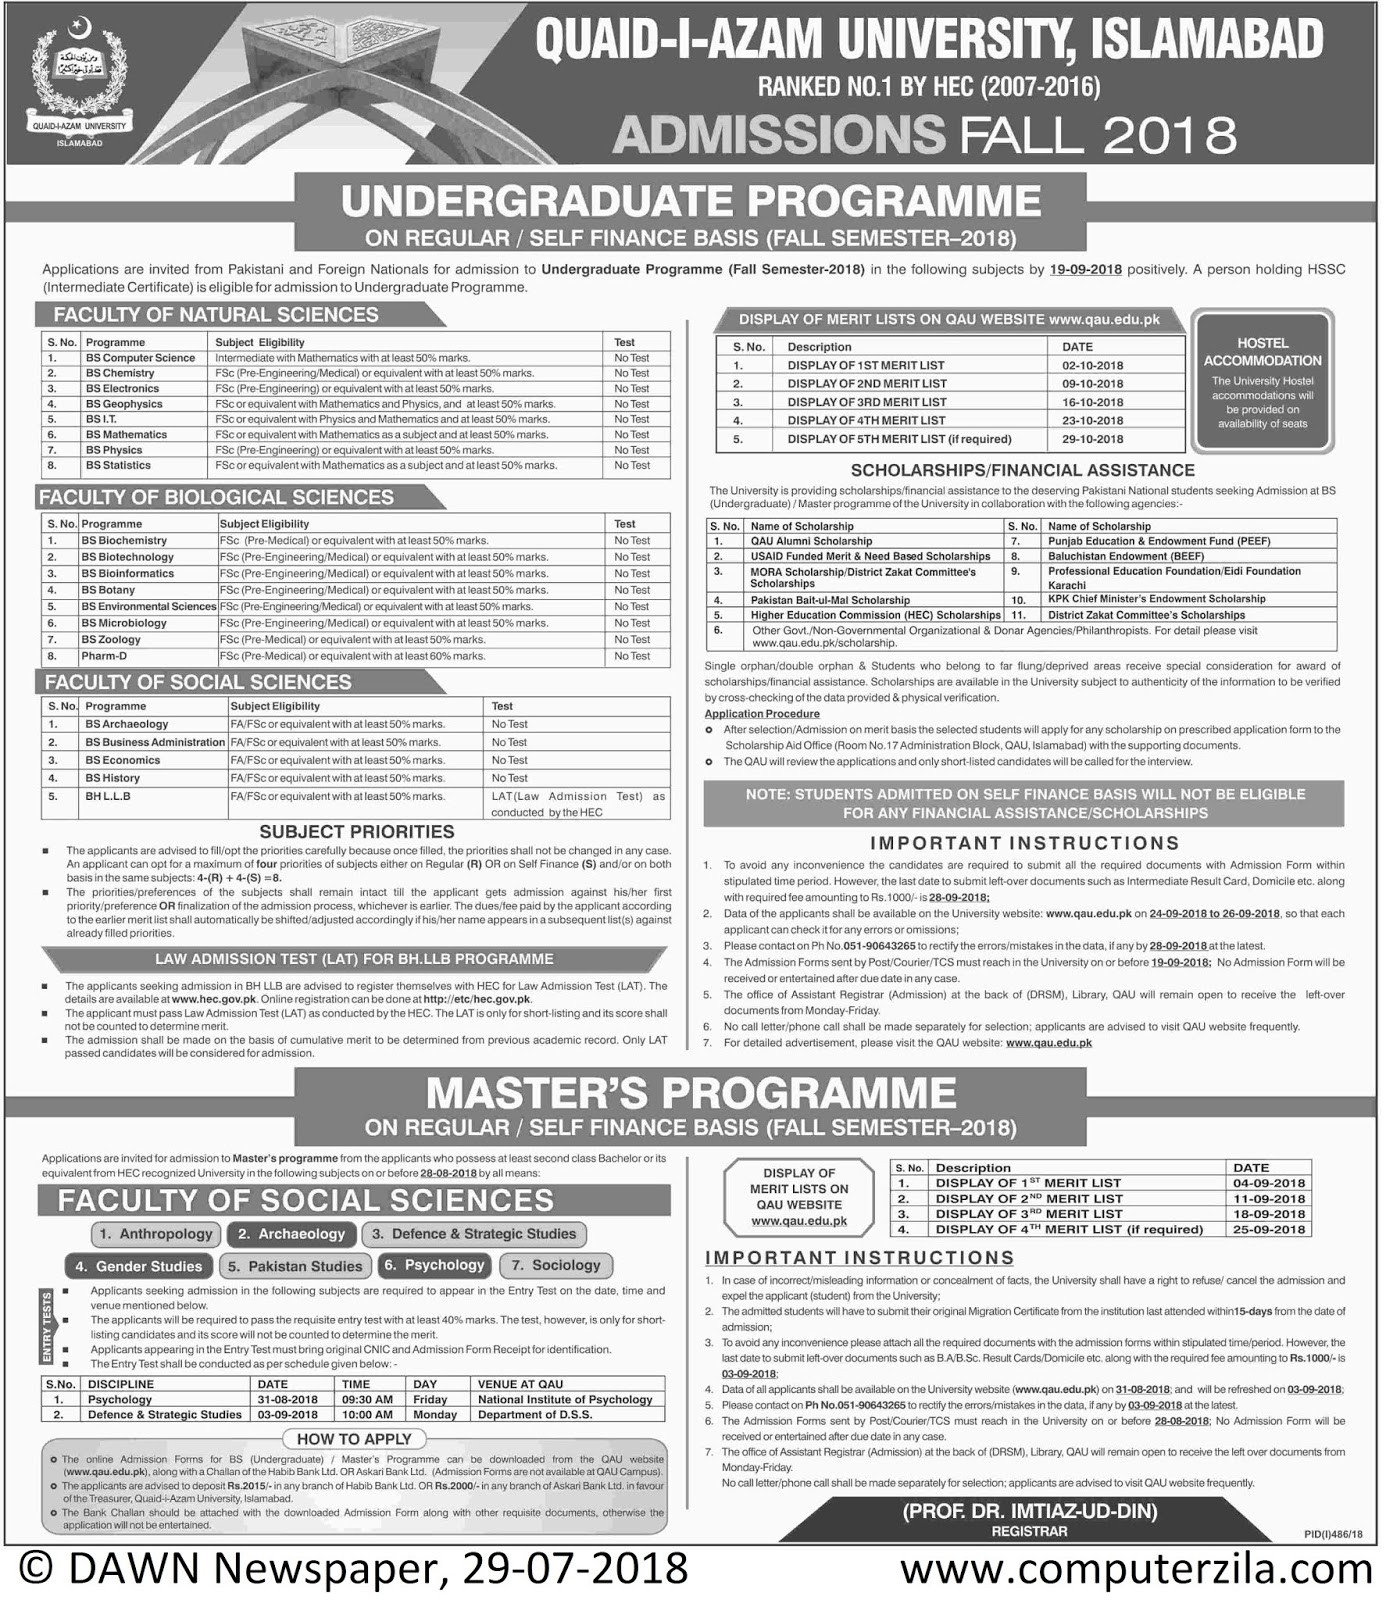 Admissions Open For Fall 2018 At QAU Islamabad Campus